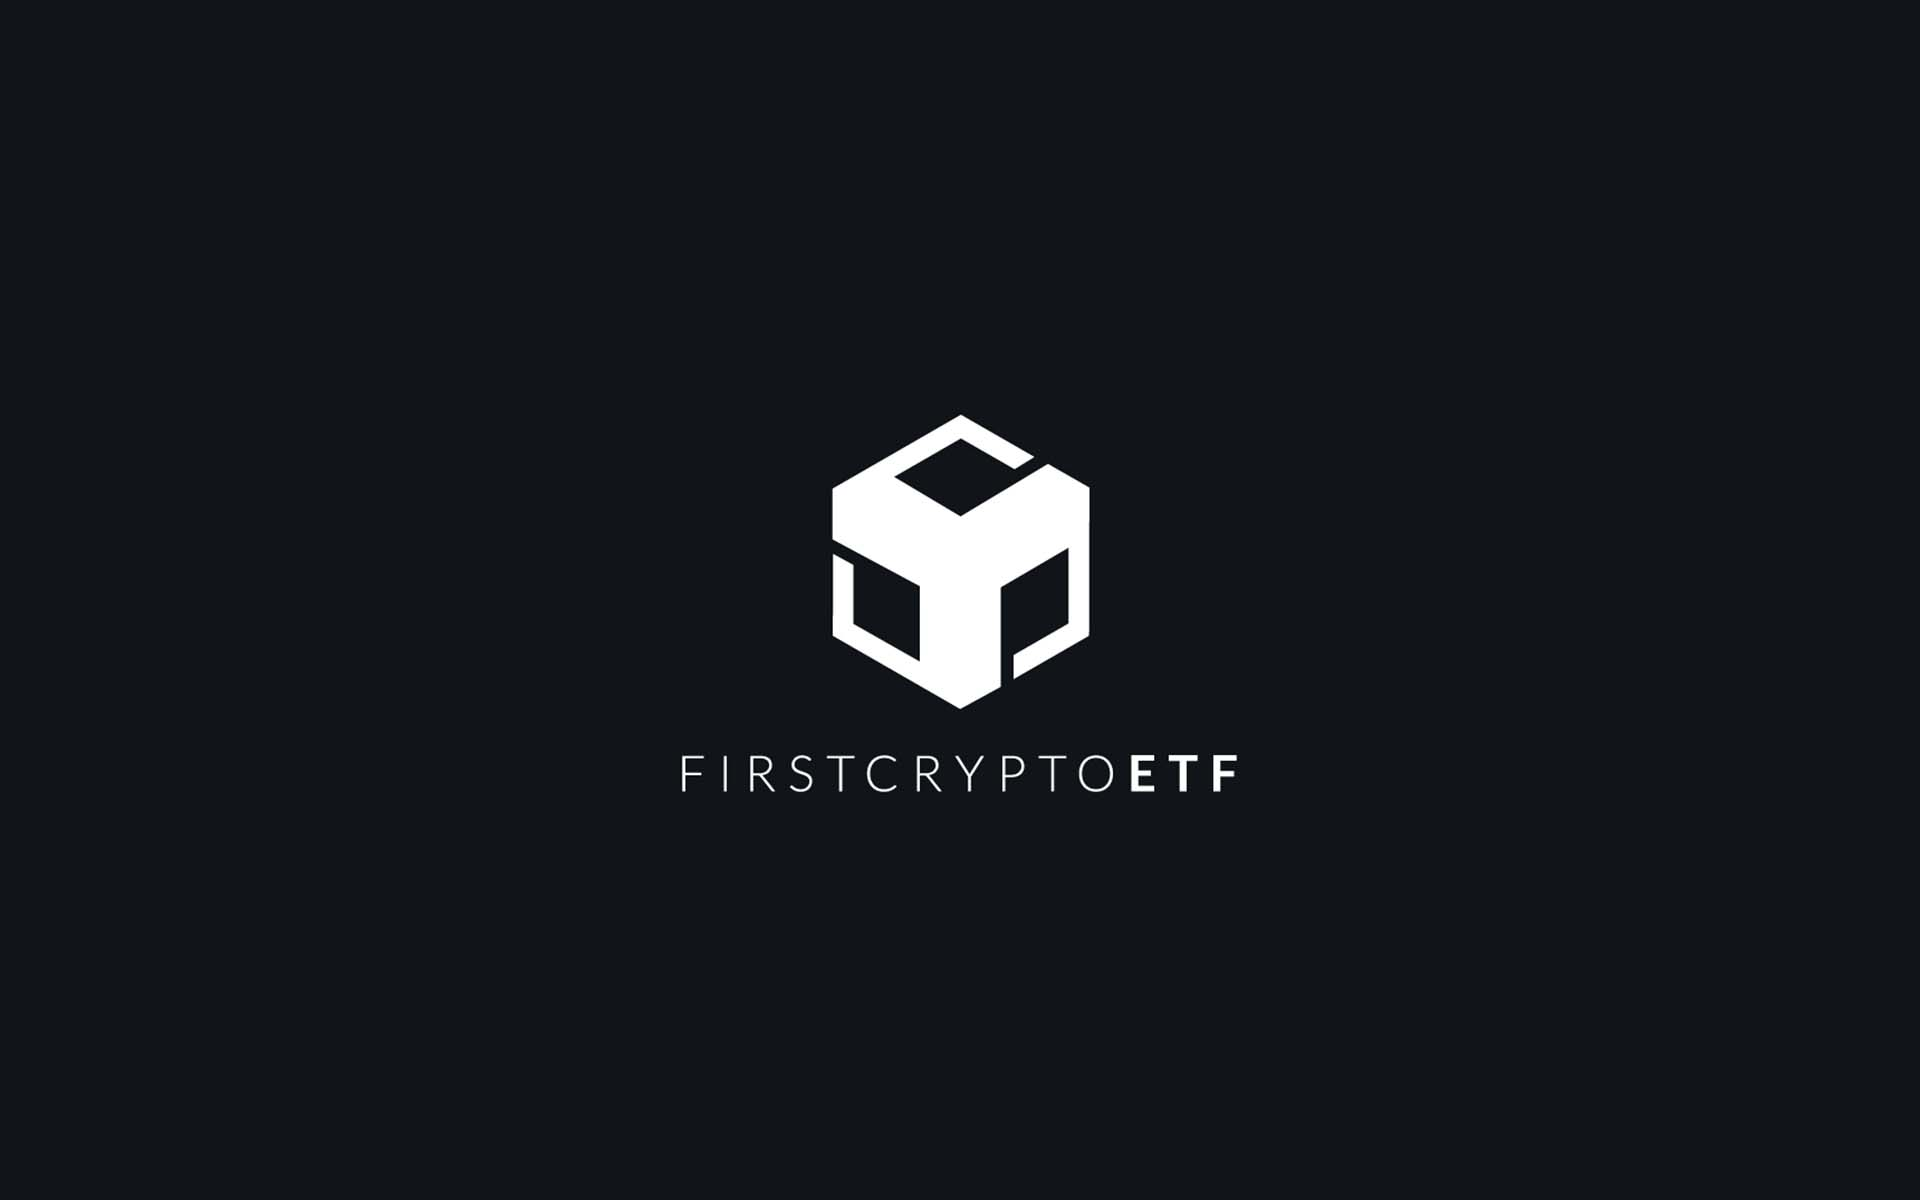 First Crypto ETF Offers Key ICO Participants Membership on Board of Directors